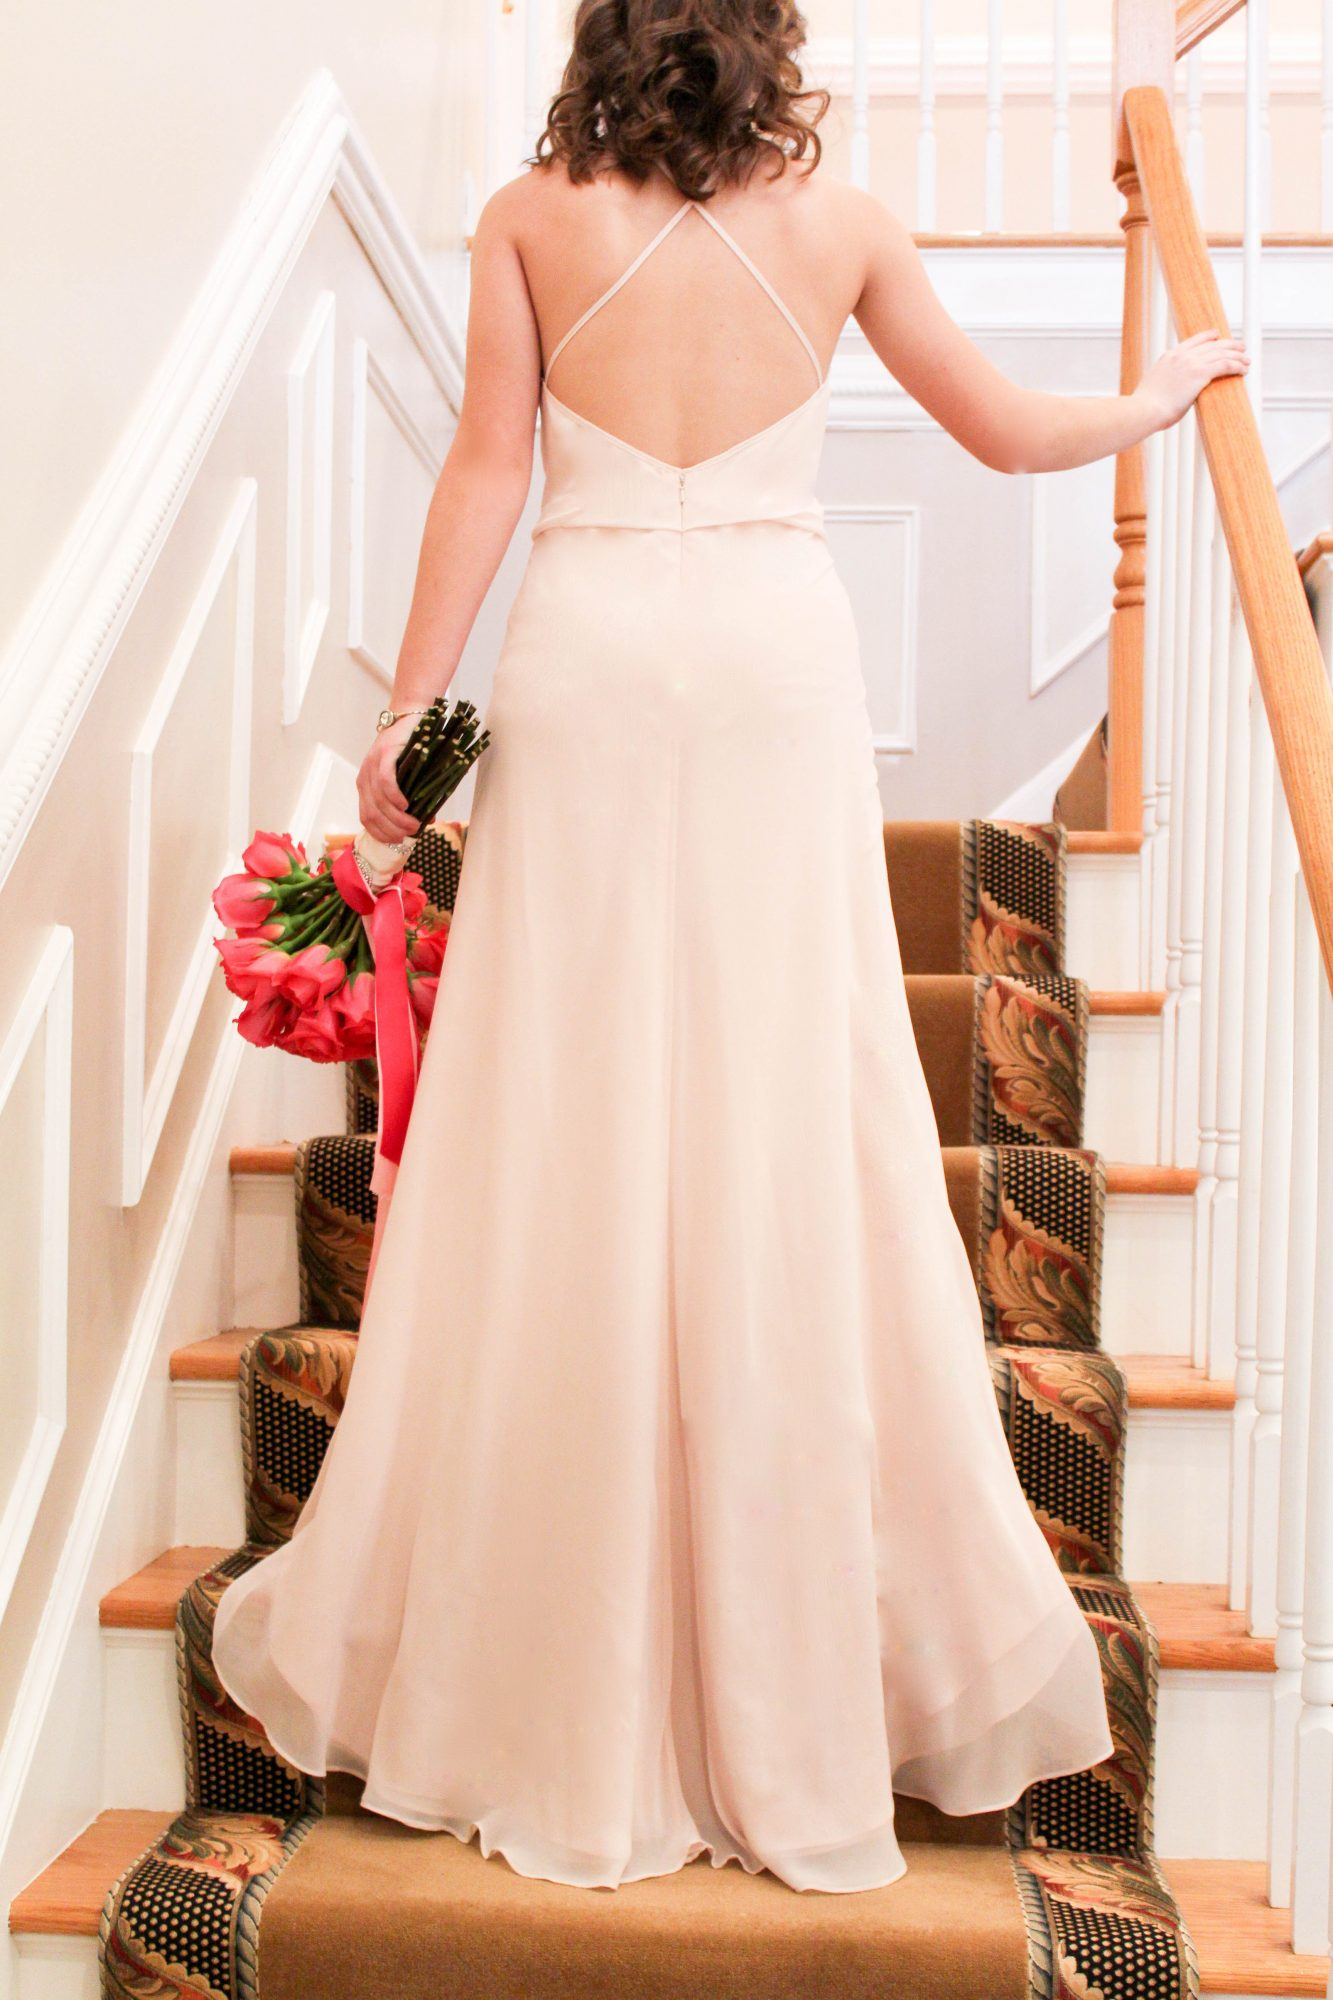 Rent designer bridesmaid dresses for under 100 with vow to be as promised the dresses arrived in style and on time we were floored by the amazing fit and the perfect hem length if you are looking for a way to save ombrellifo Images